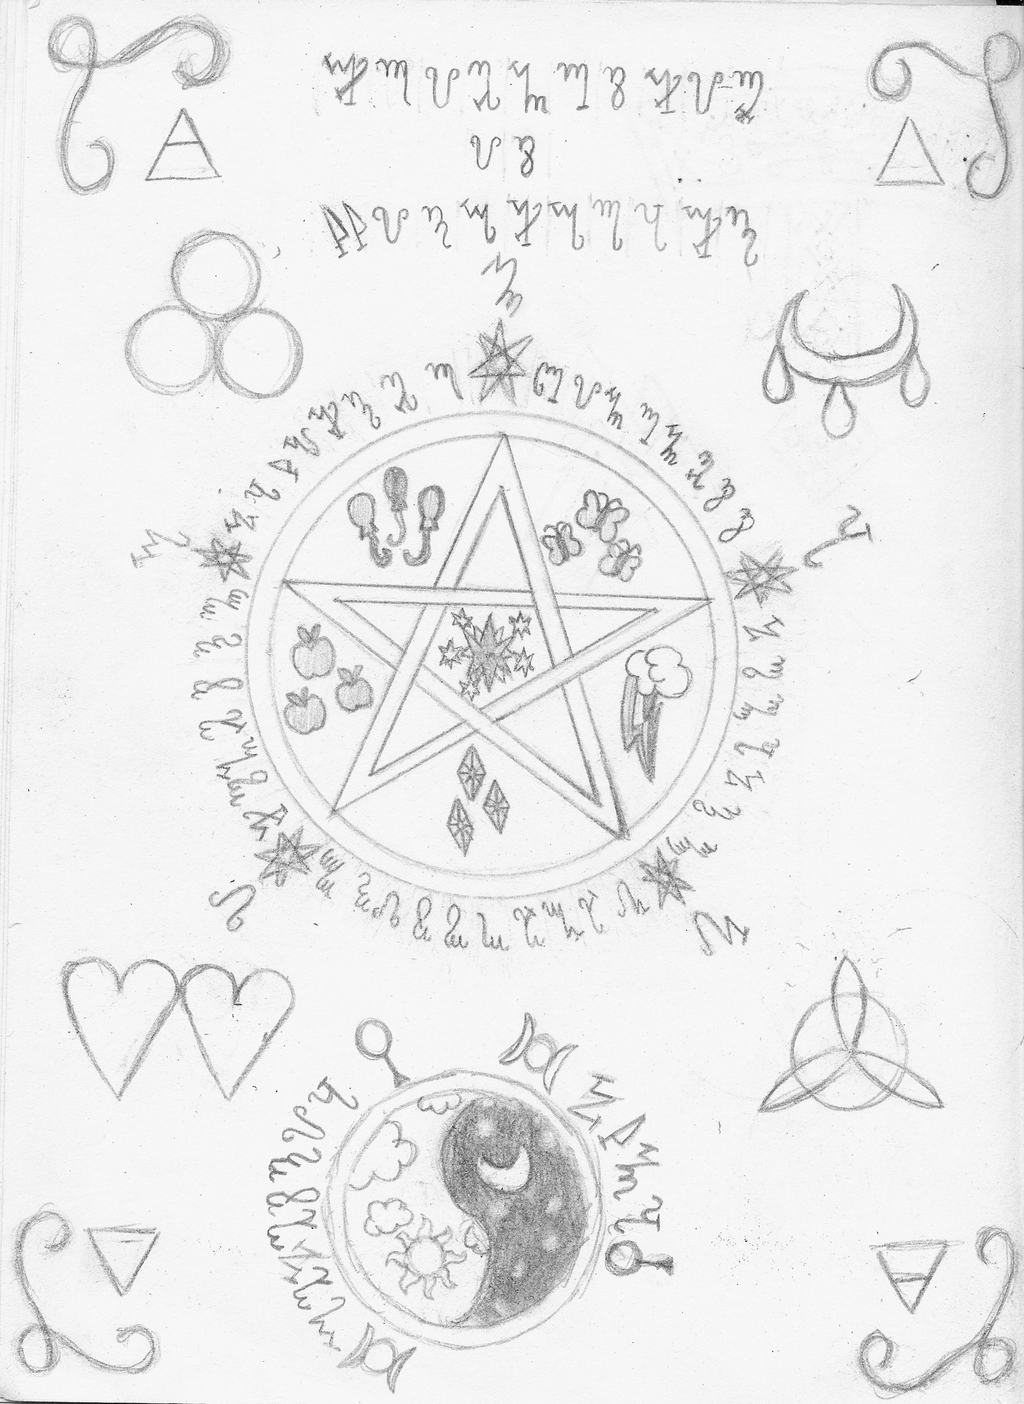 Friendship is witchcraft the friendship scroll by mane shaker friendship is witchcraft the friendship scroll by mane shaker buycottarizona